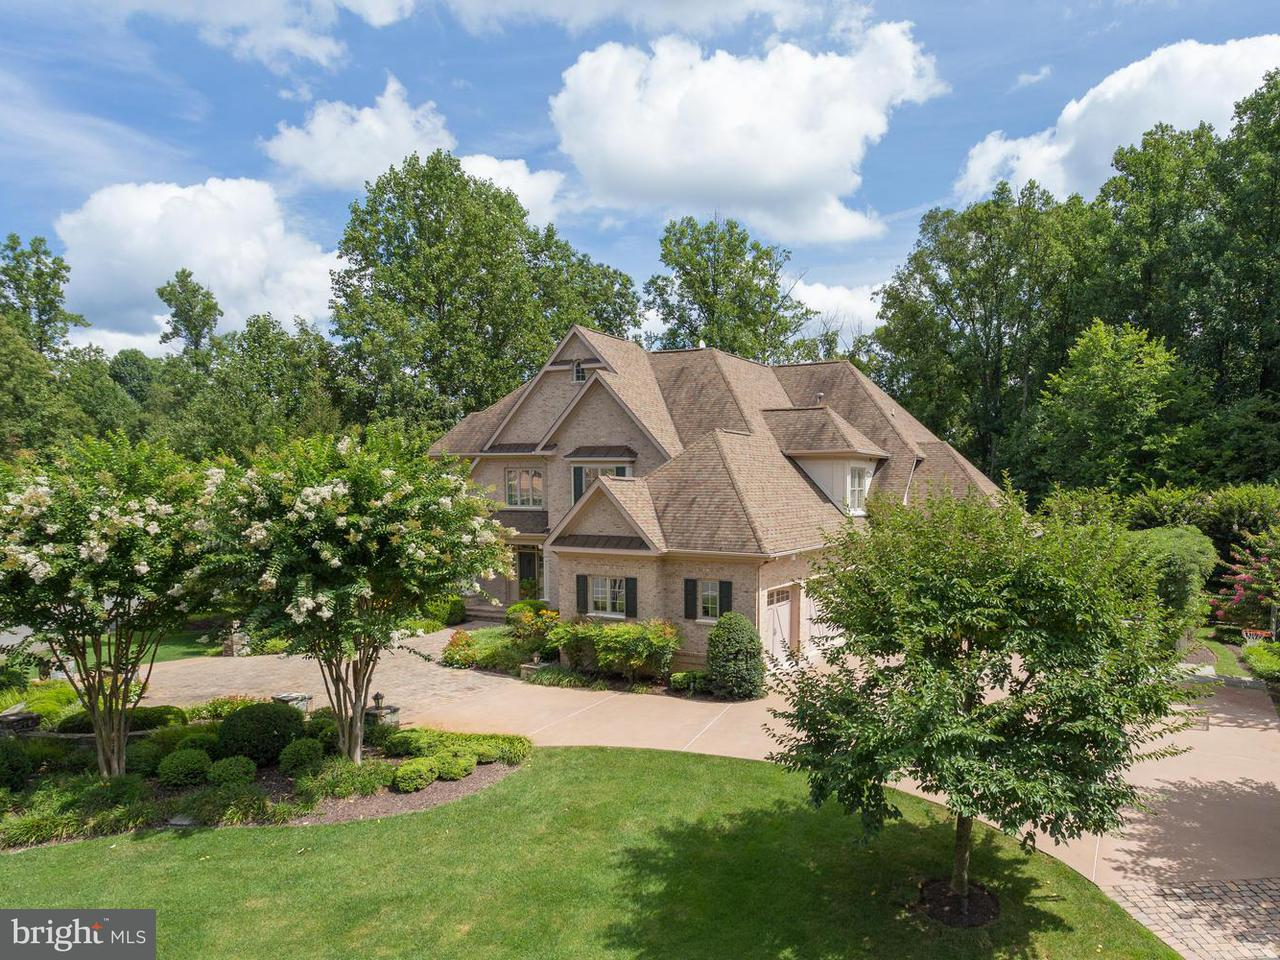 Single Family Home for Sale at 1005 SHALLOW CREEK Place 1005 SHALLOW CREEK Place Great Falls, Virginia 22066 United States